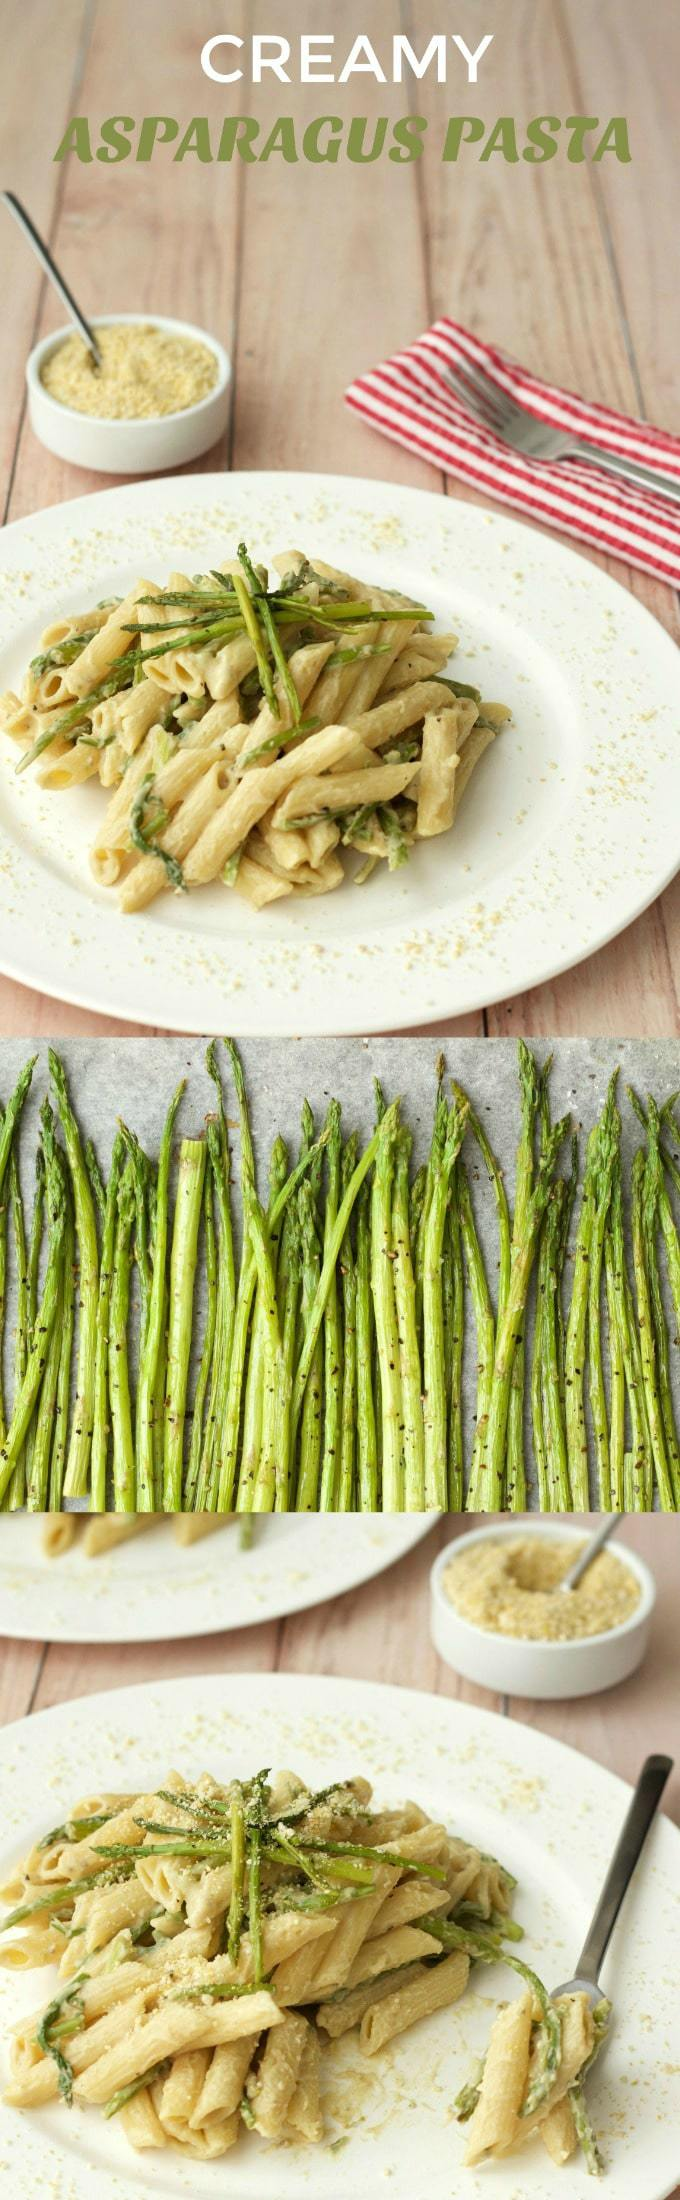 Creamy asparagus pasta, a hearty and deliciously satisfying plant-based entree! Ready in 30-40 minutes, filling, flavorful and vegan. | lovingitvegan